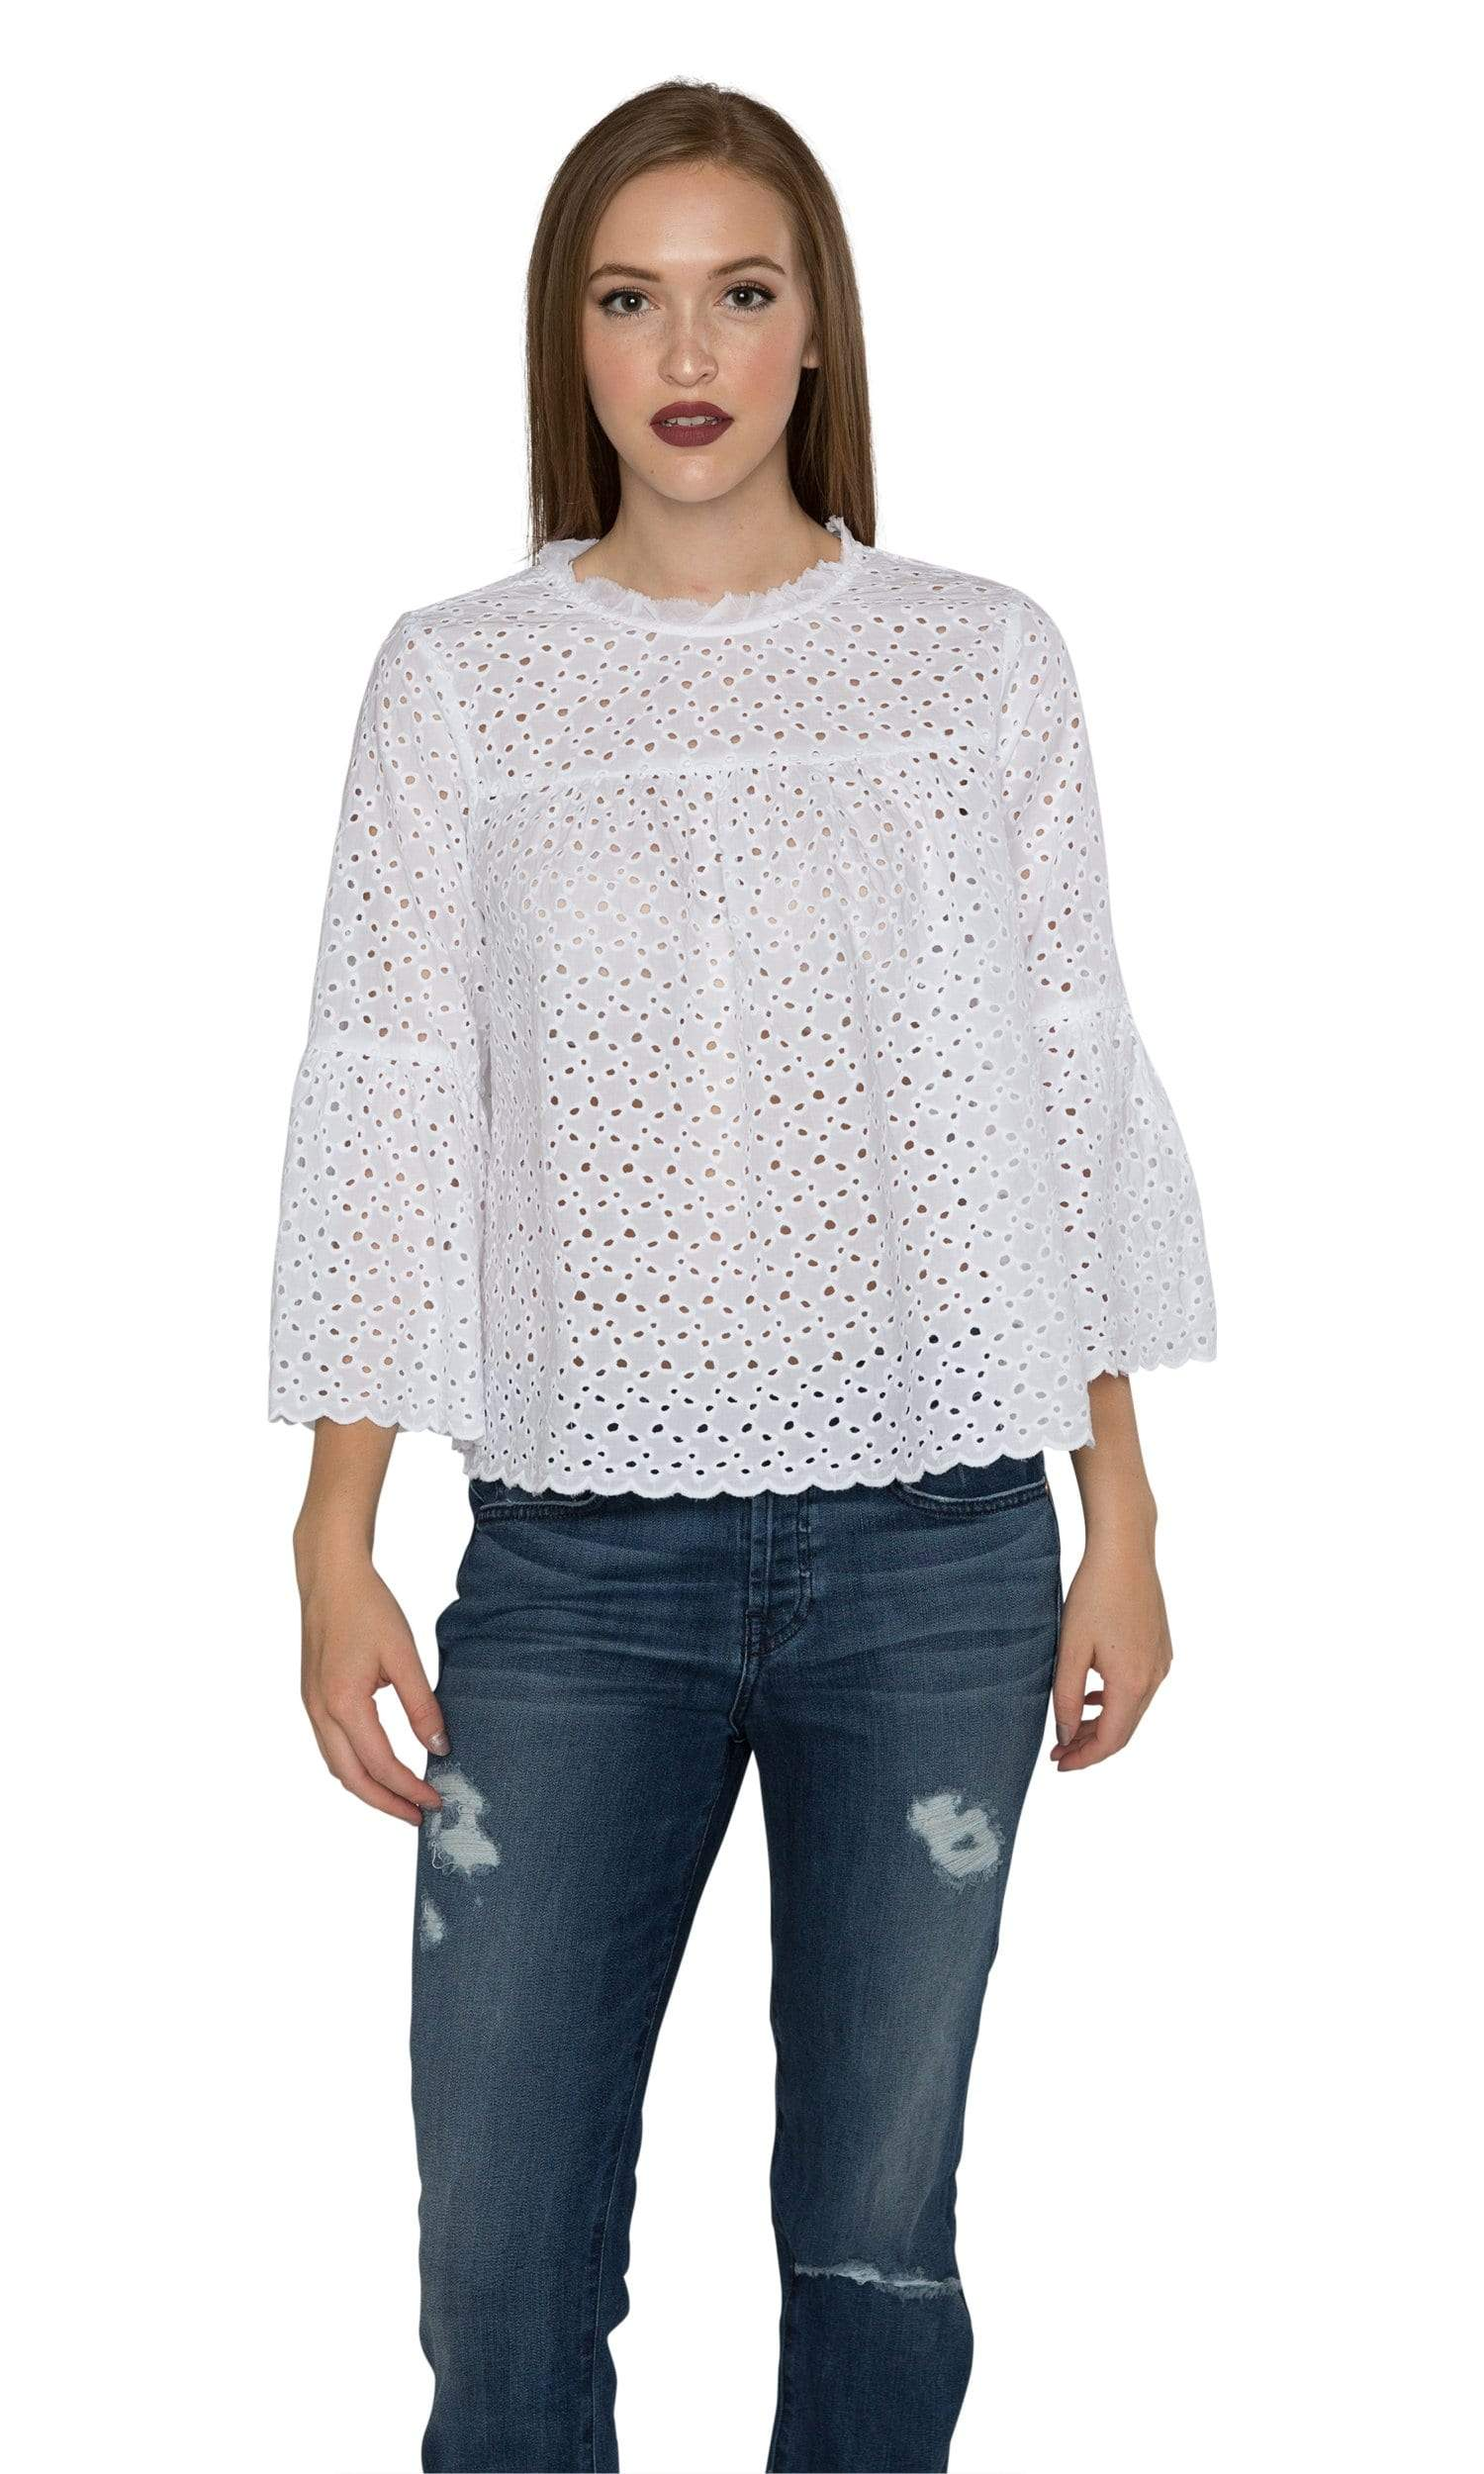 Velvet by Graham & Spencer Gabby Cotton Eyelet Mock Neck Top